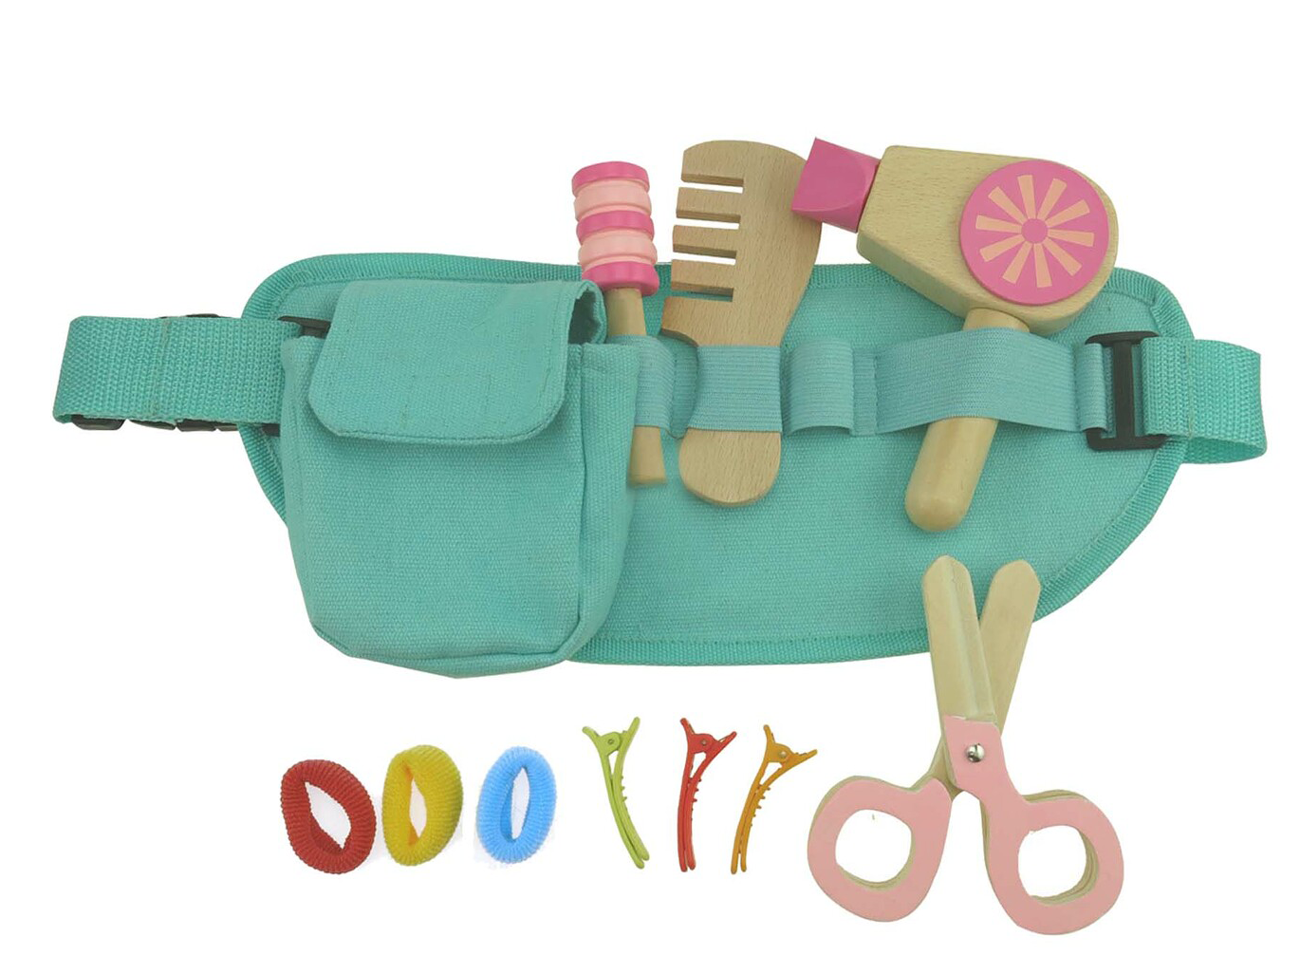 Kaper Kidz Wooden Hairdresser Belt Playset